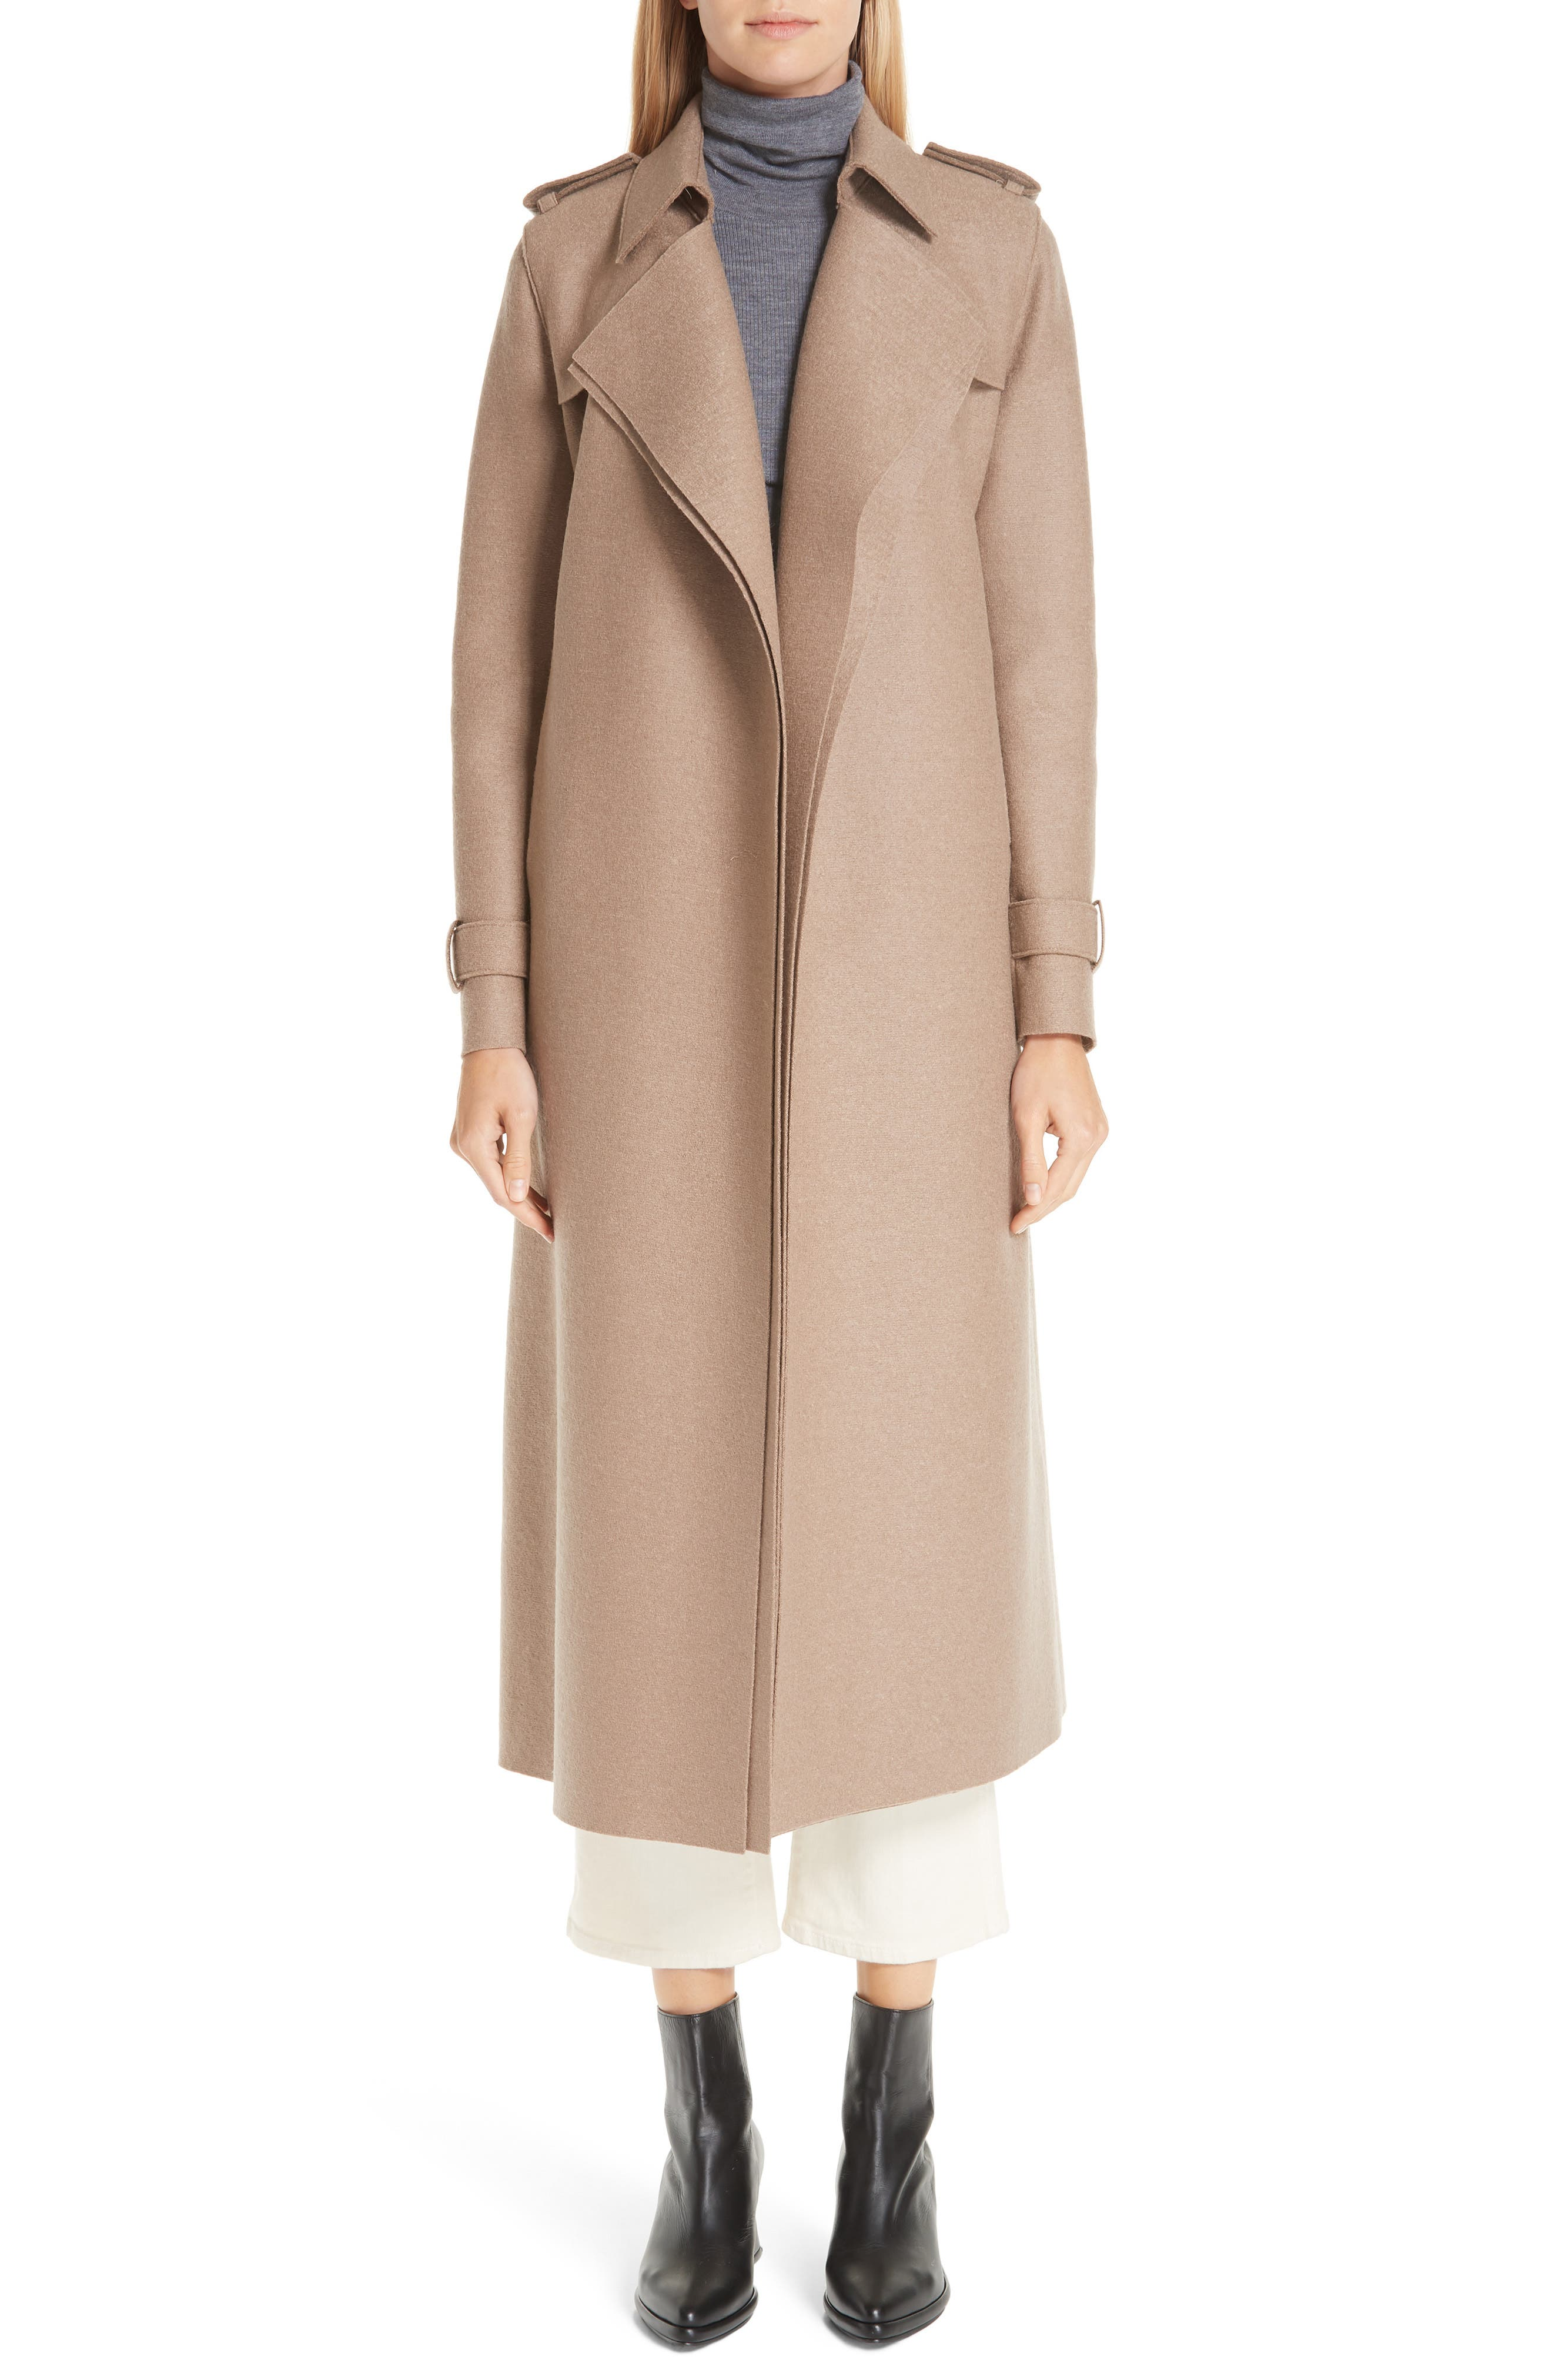 HARRIS WHARF LONDON, Long Belted Trench, Main thumbnail 1, color, CAMEL